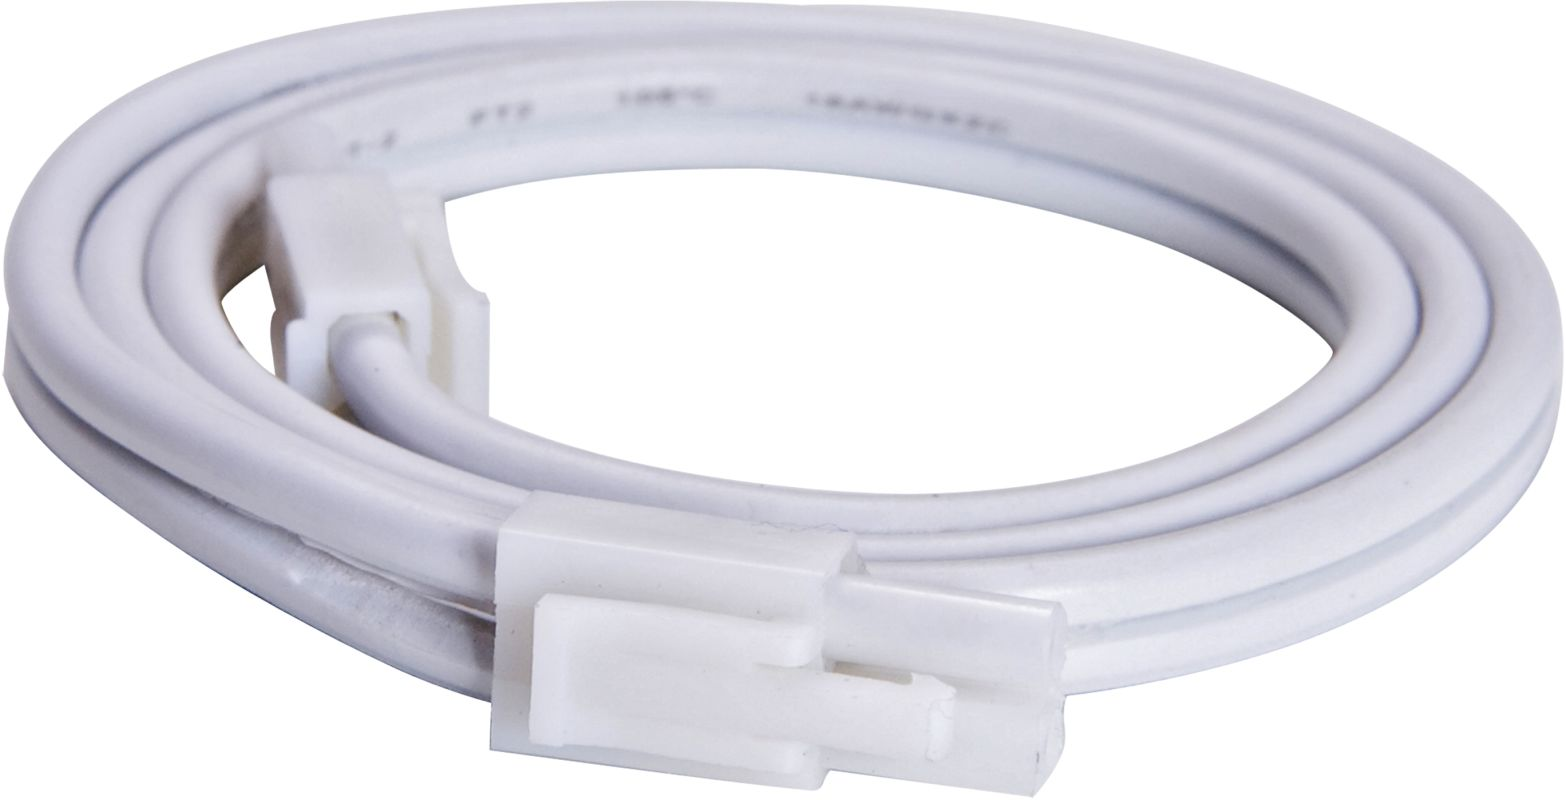 "Maxim 87819 18"" Interlink Cord from the CounterMax MX-L Collection"